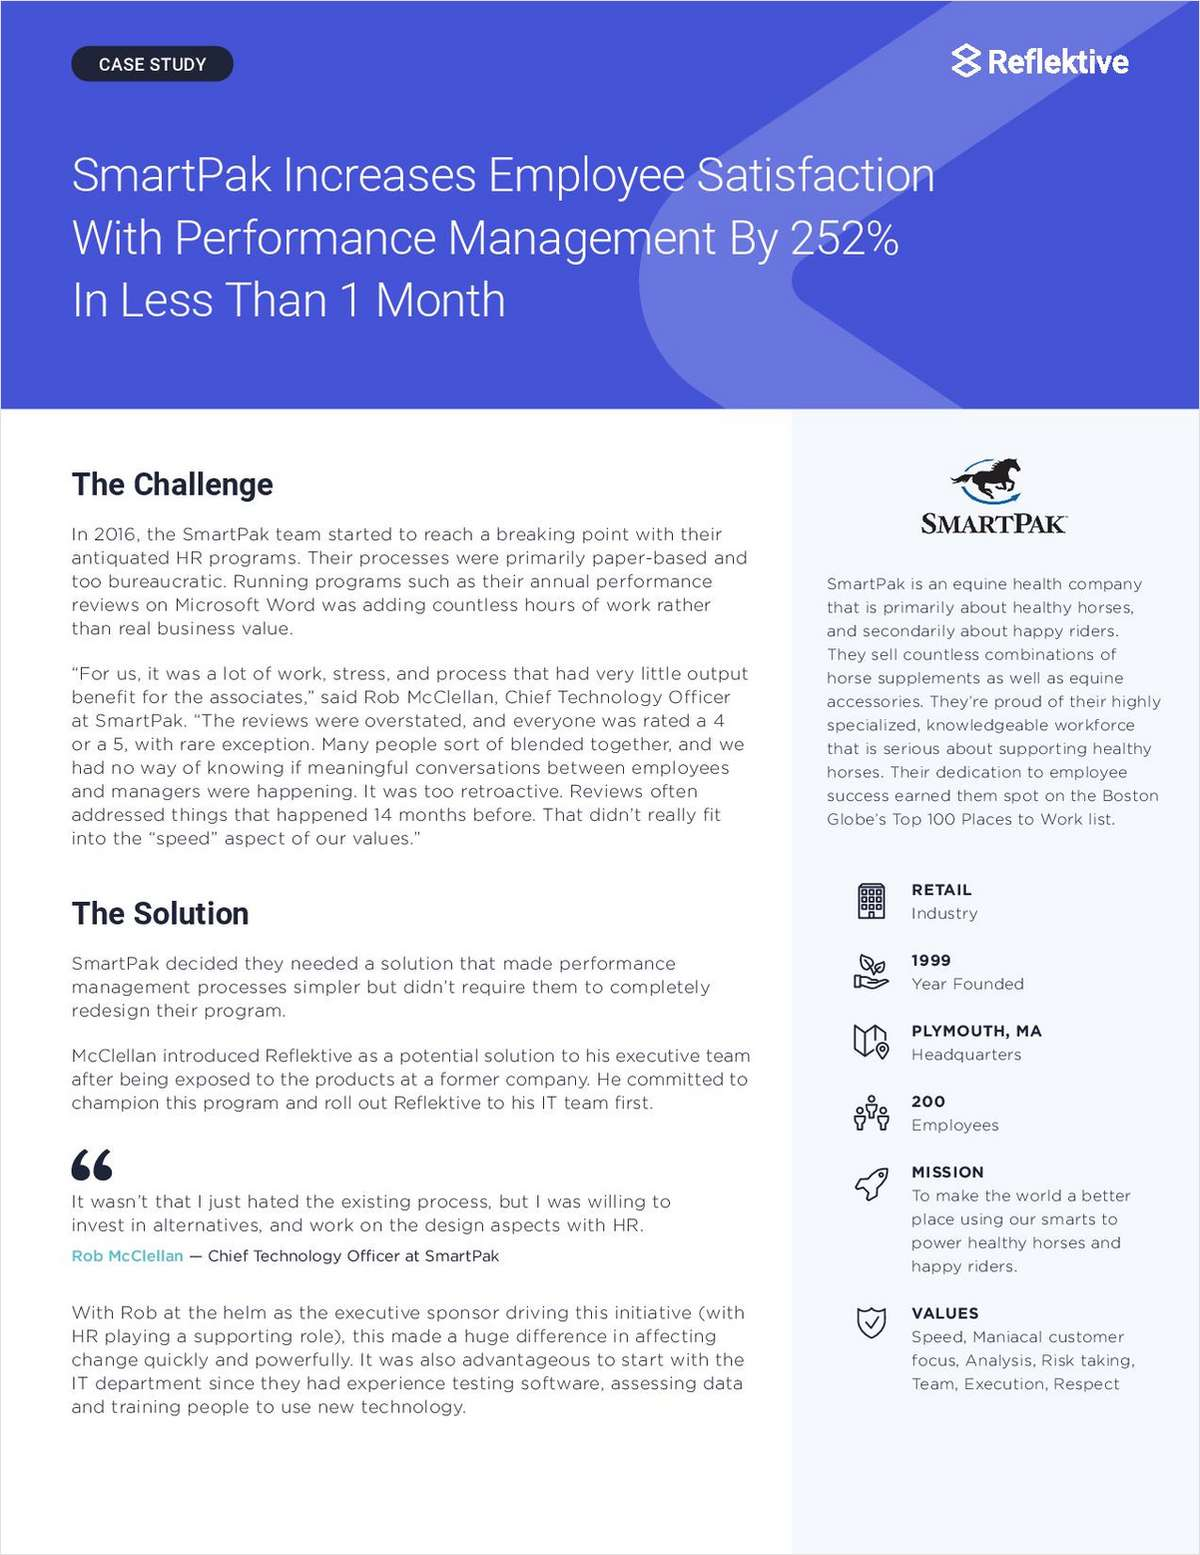 SmartPak Increases Satisfaction With Performance Management By 252% In Less Than 1 Month